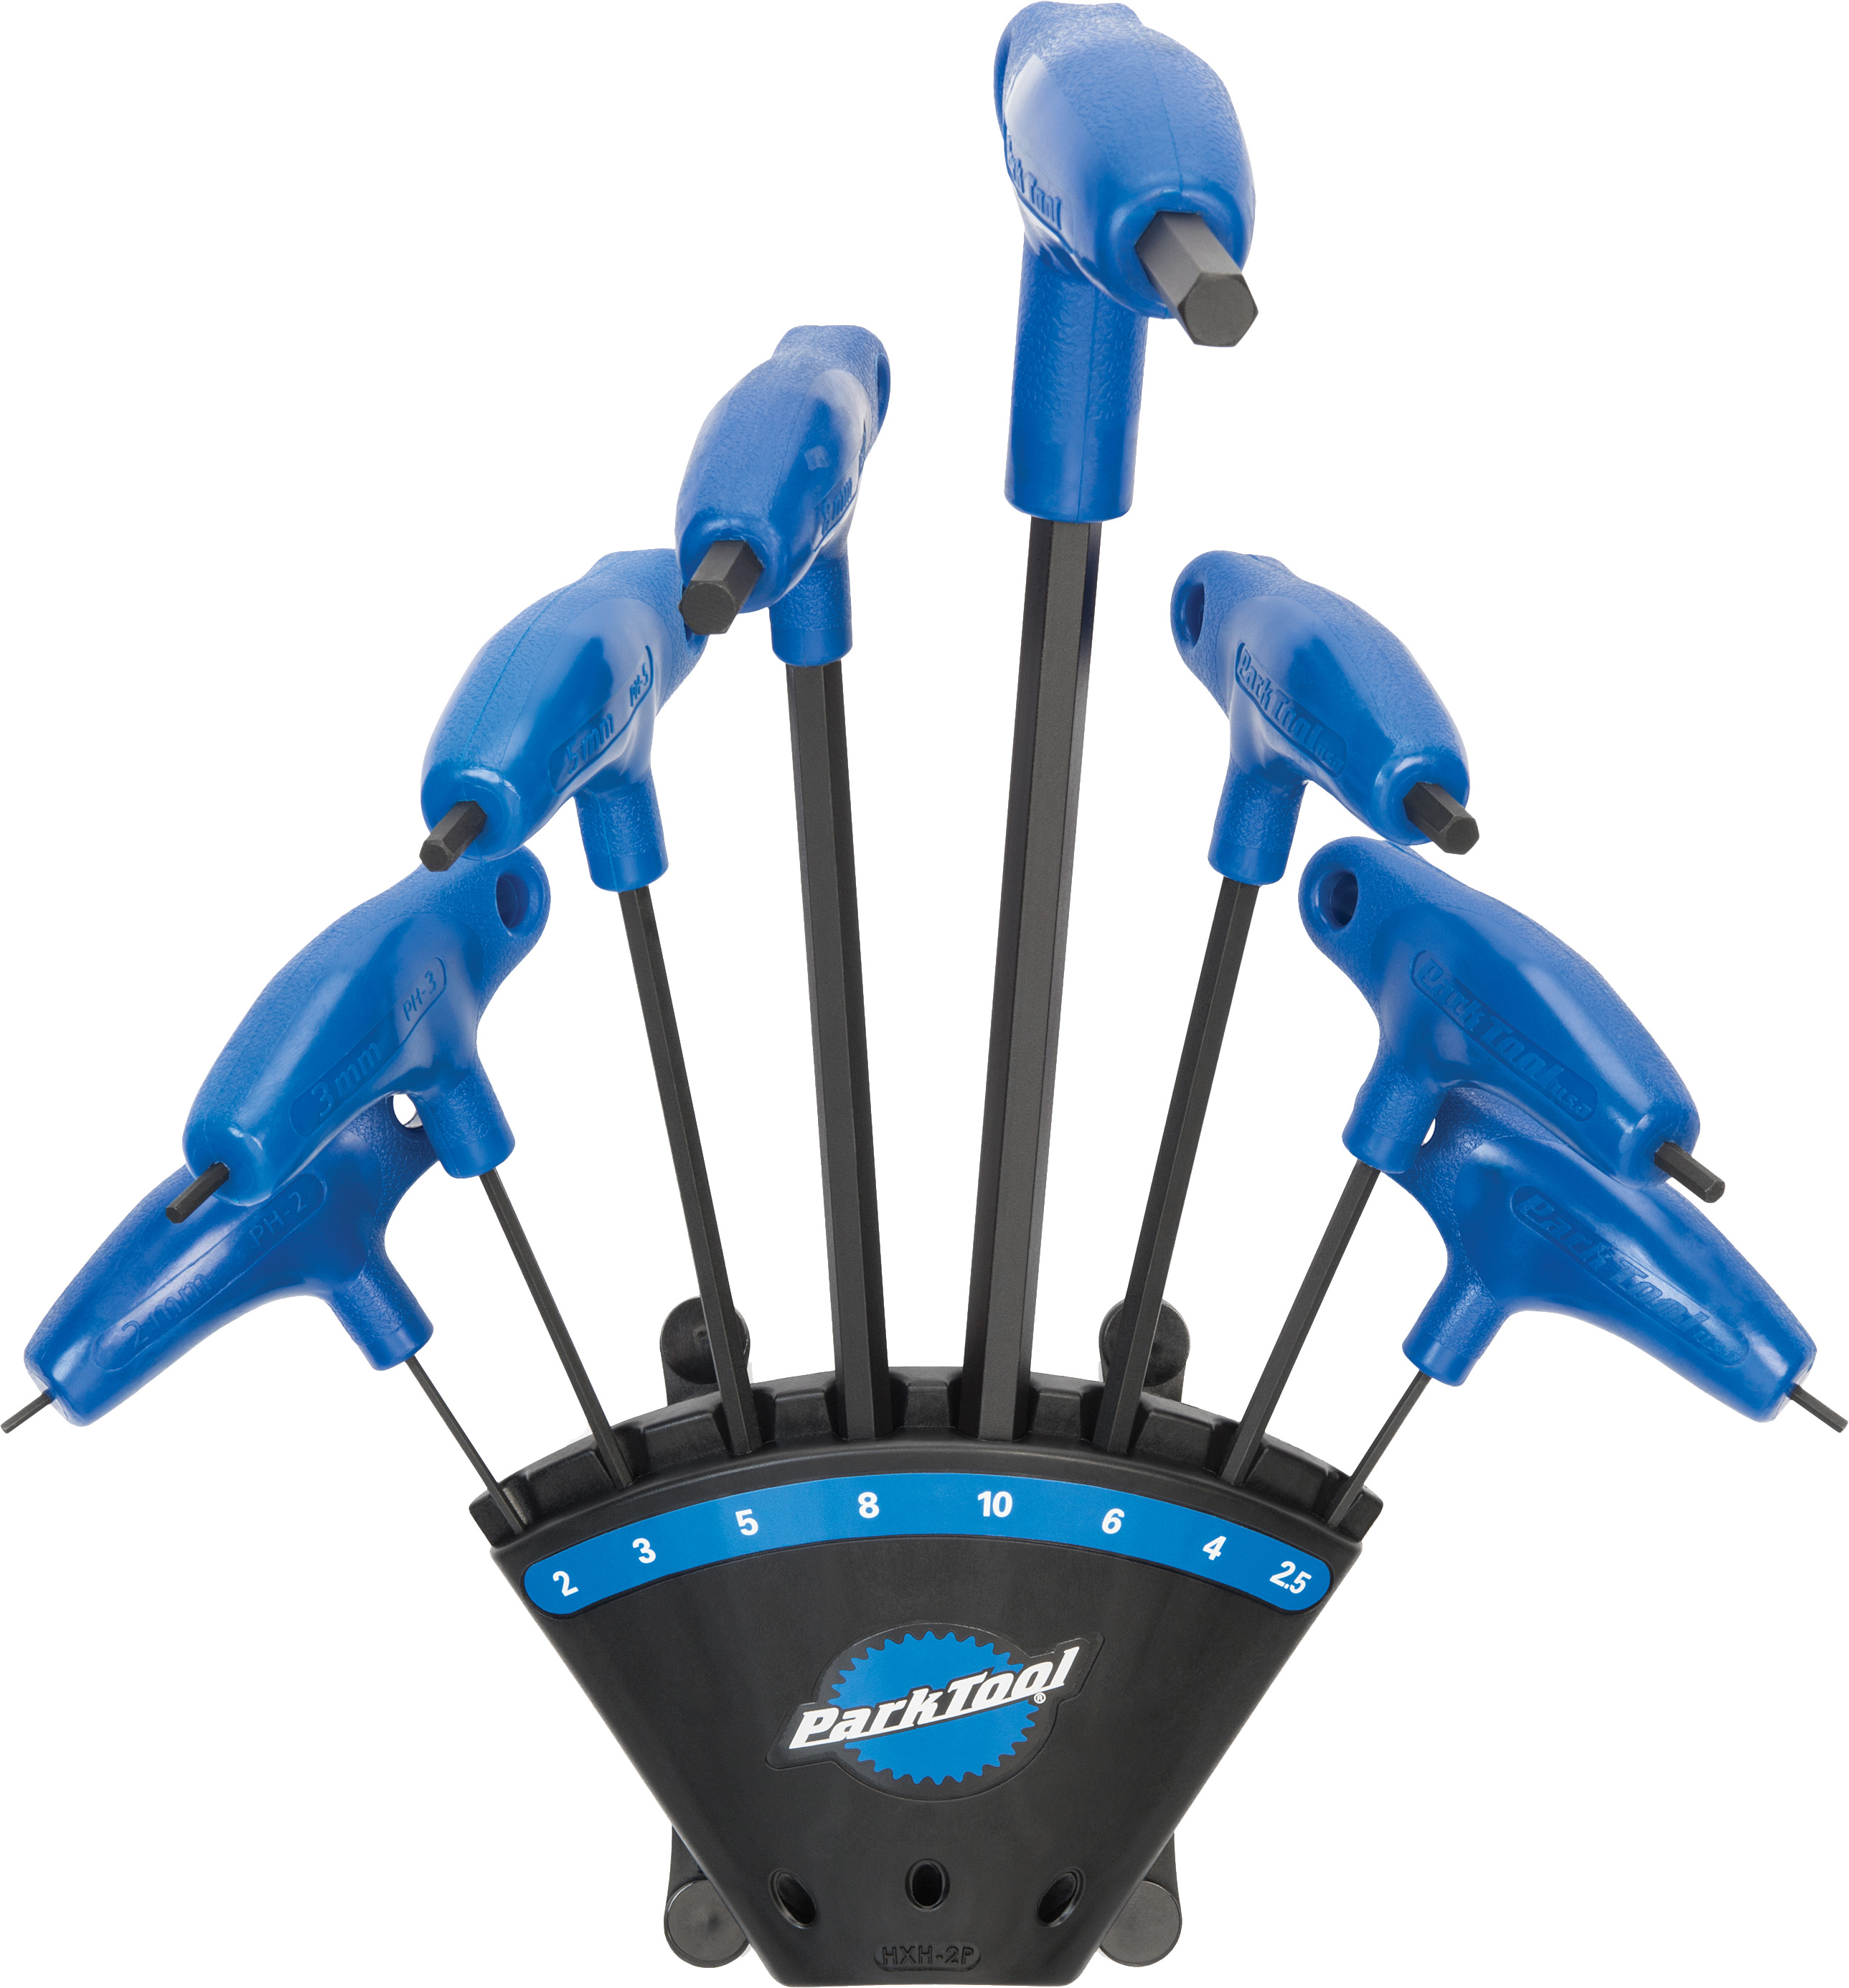 Park Tool P-Handle Hex Wrench Set PH-1.2   tools_component